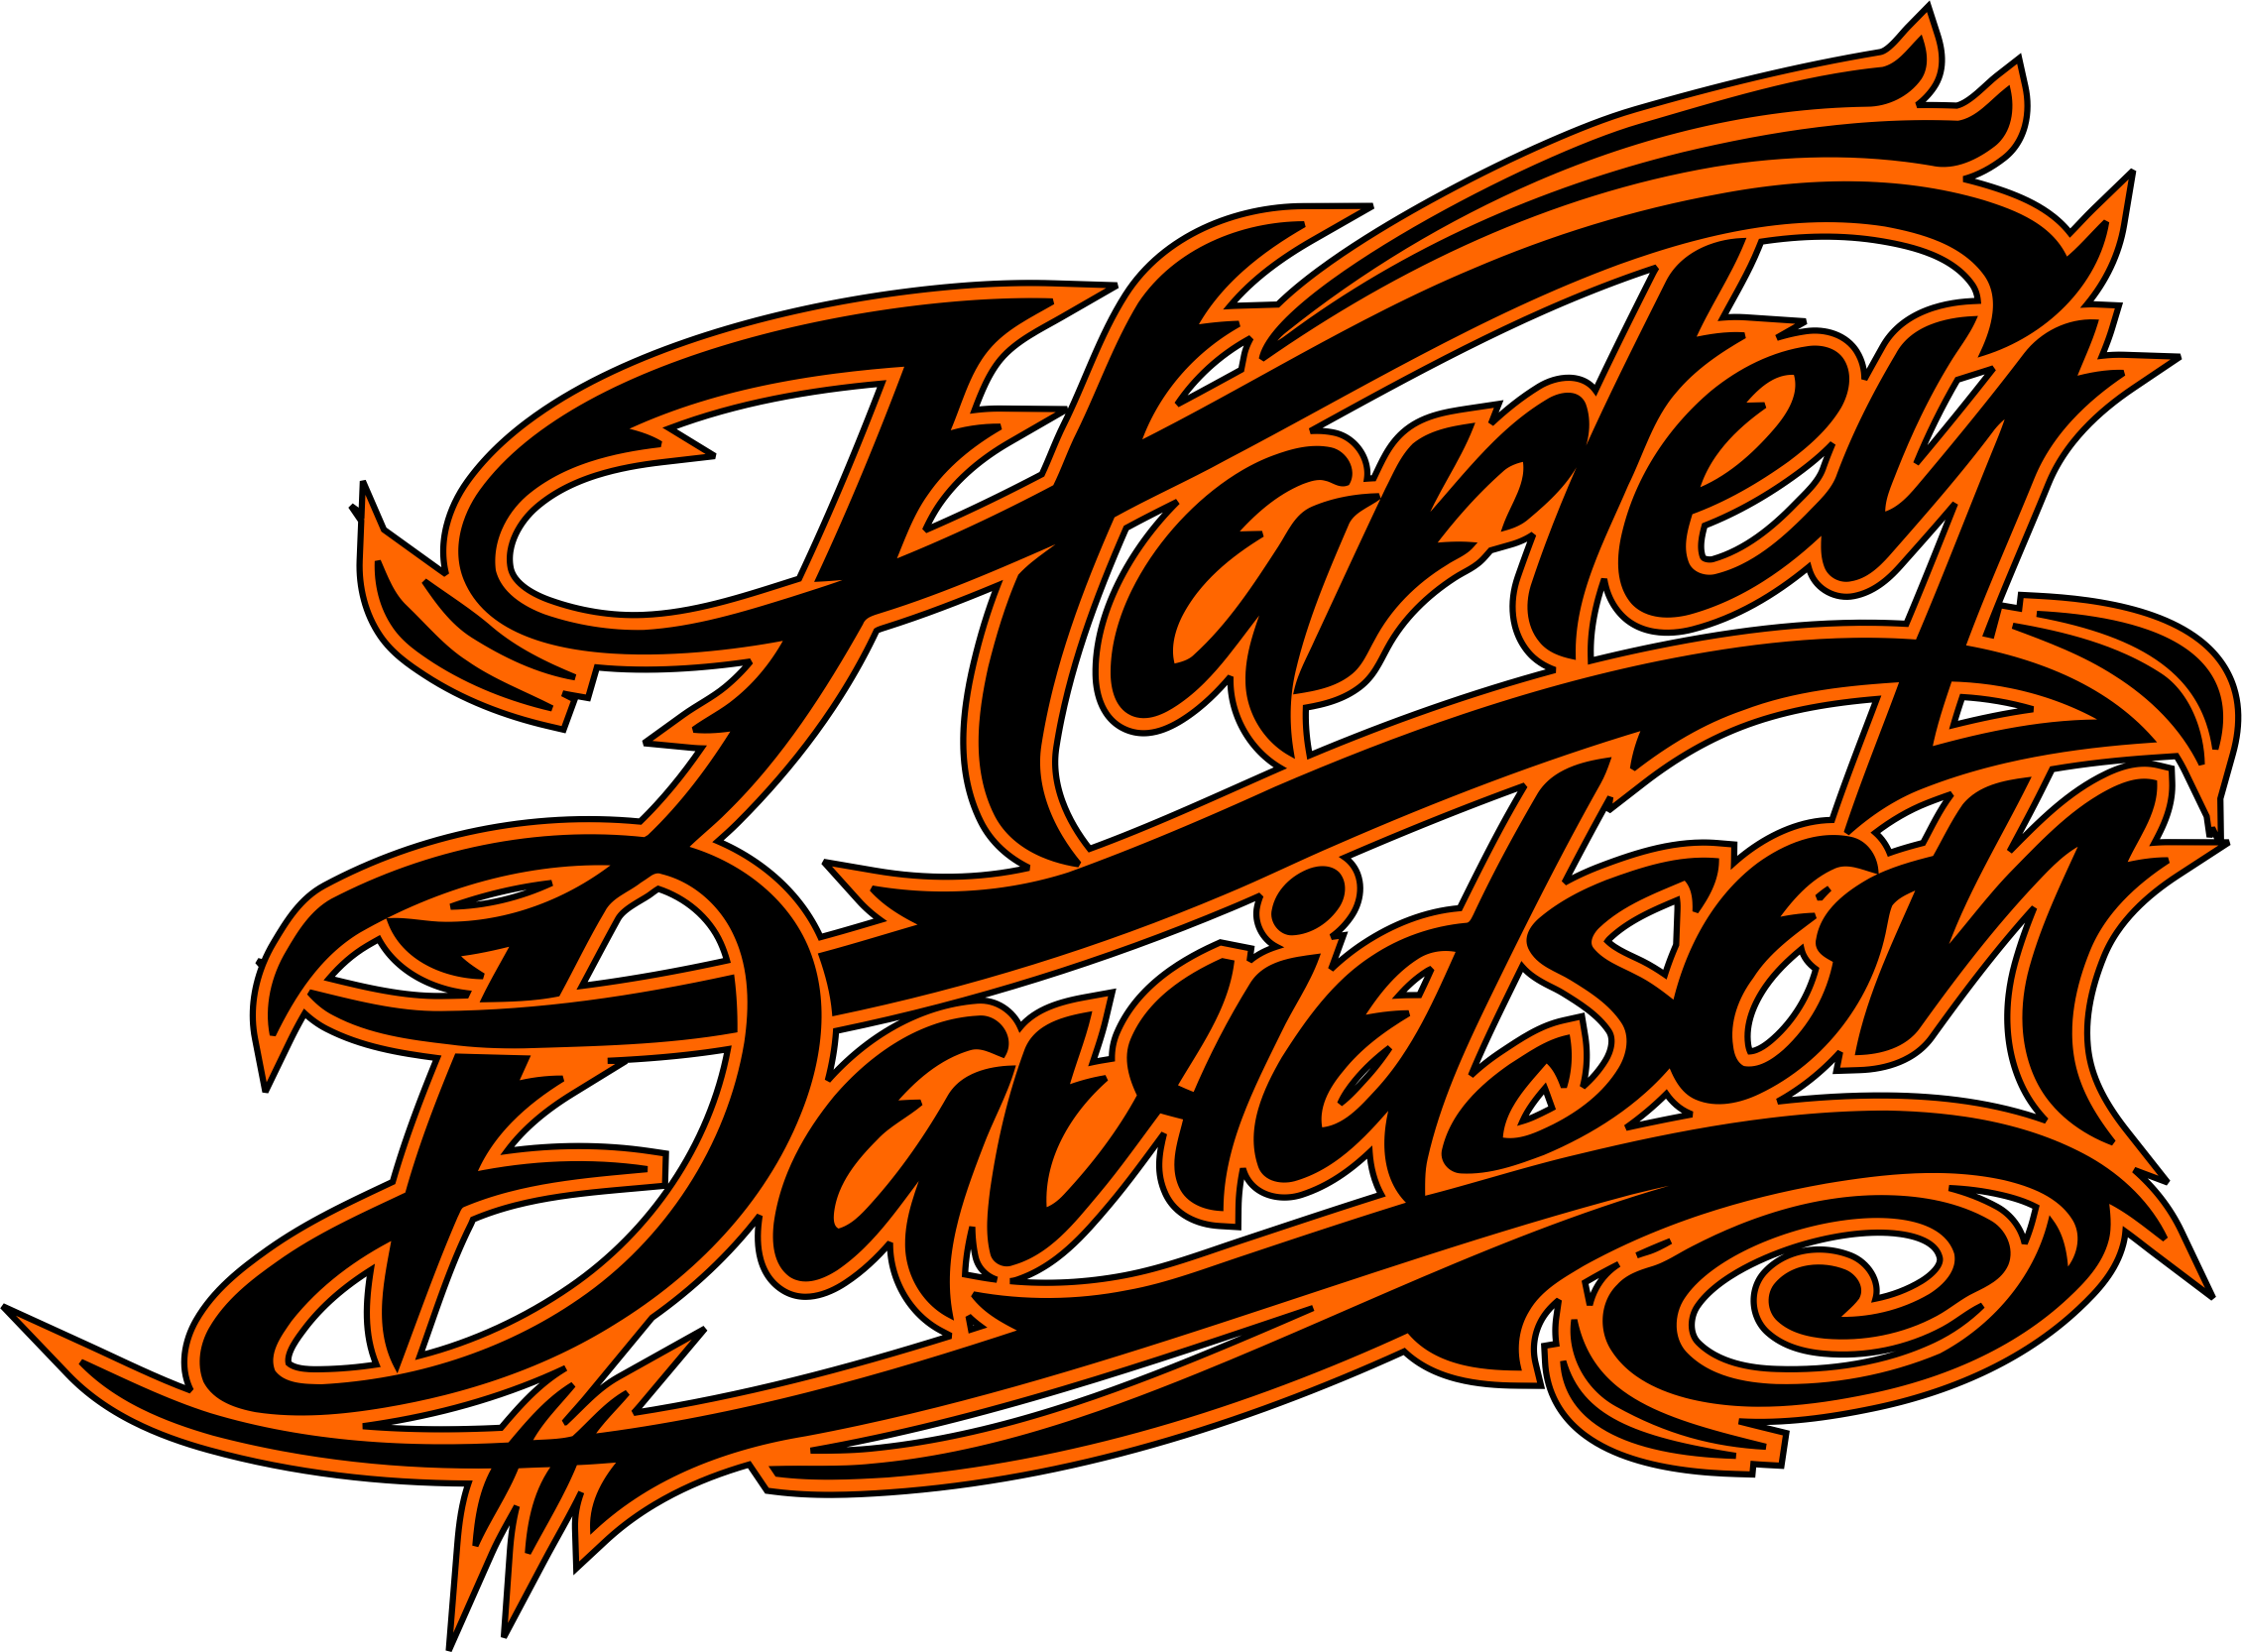 clipart harley davidson at getdrawings com free for personal use rh getdrawings com harley davidson clip art design harley davidson clip art black and white